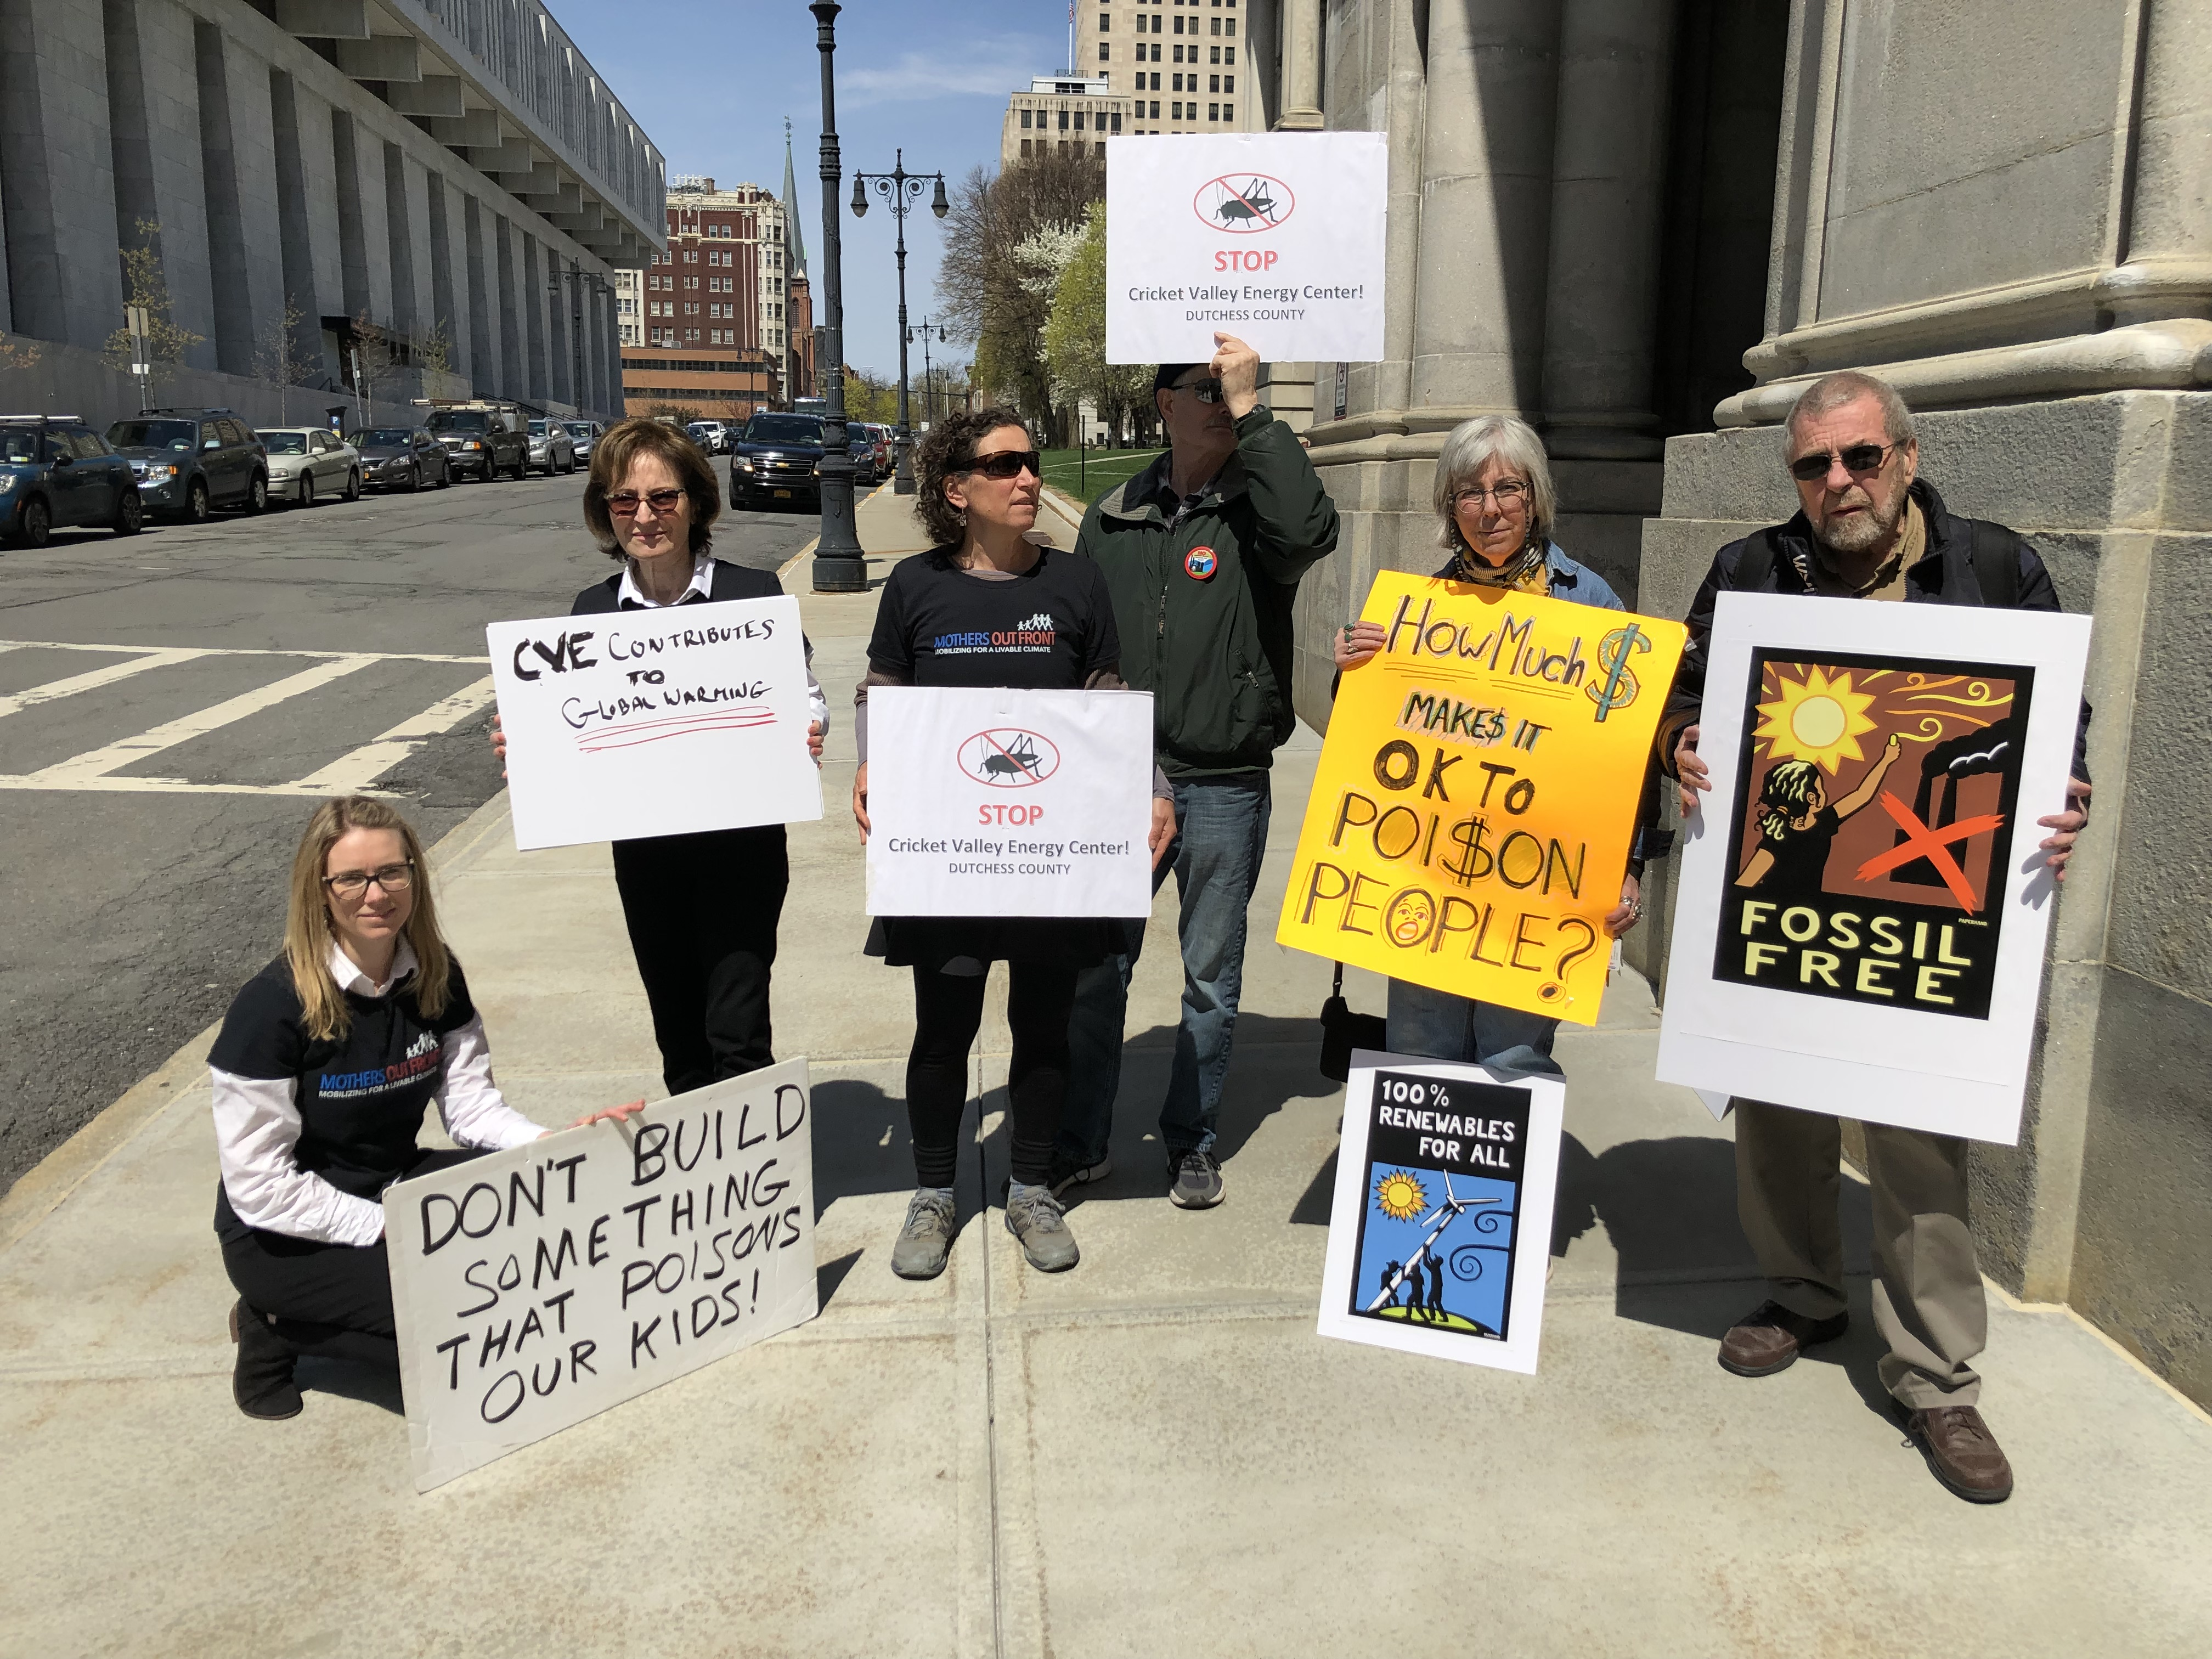 NY_CricketValley_Megan_Root_20190429_AlbanyProtest.jpg